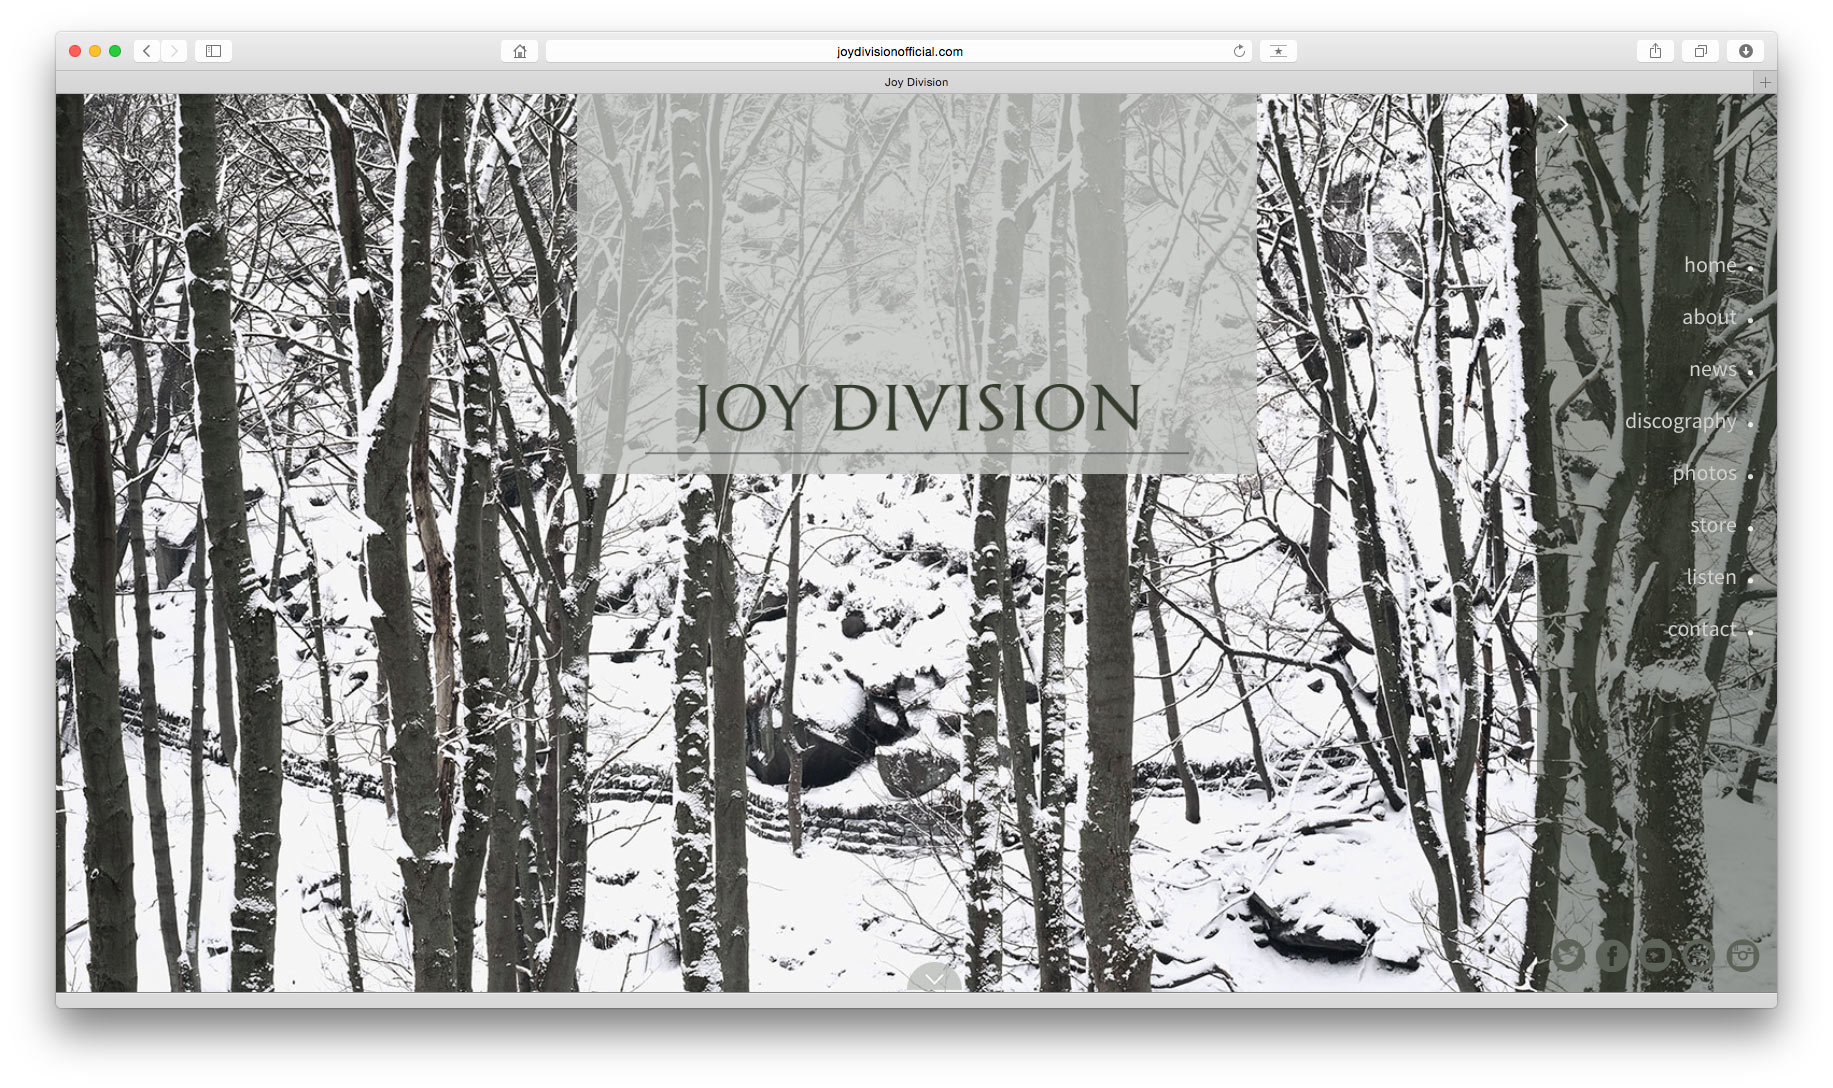 Joy-Division-home-page.jpg